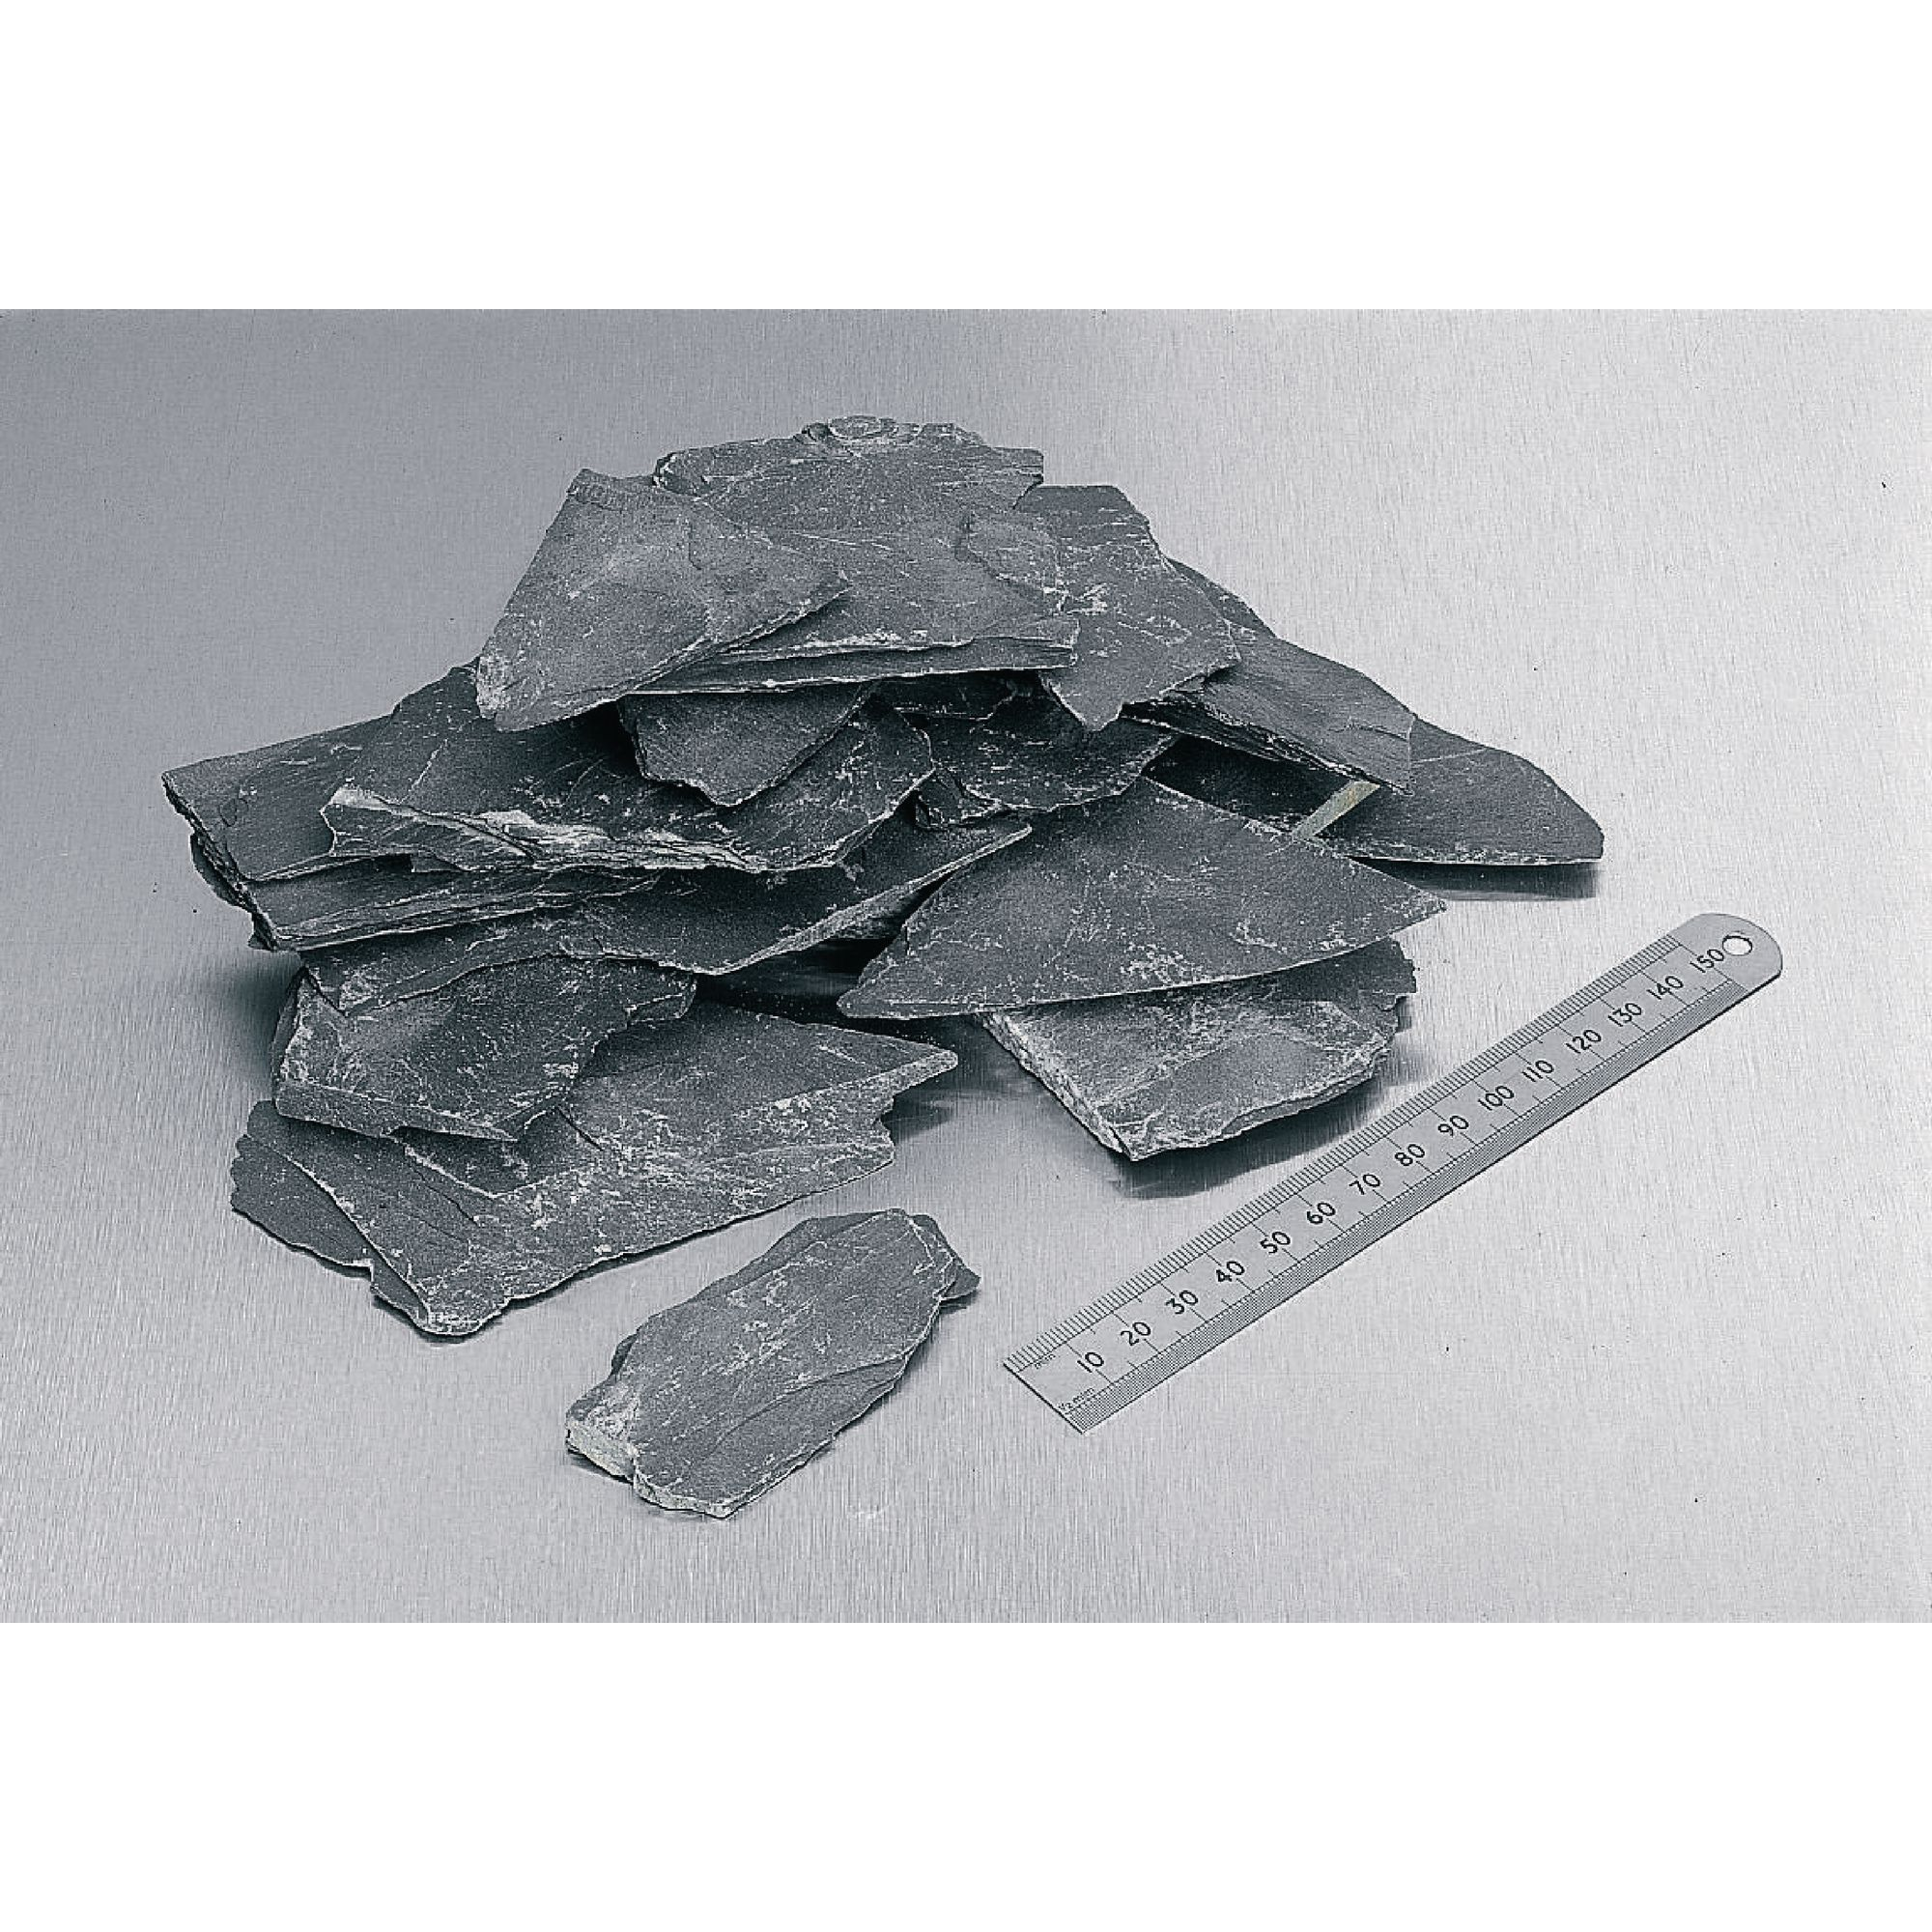 Slate Fragments Metamorphic Rocks